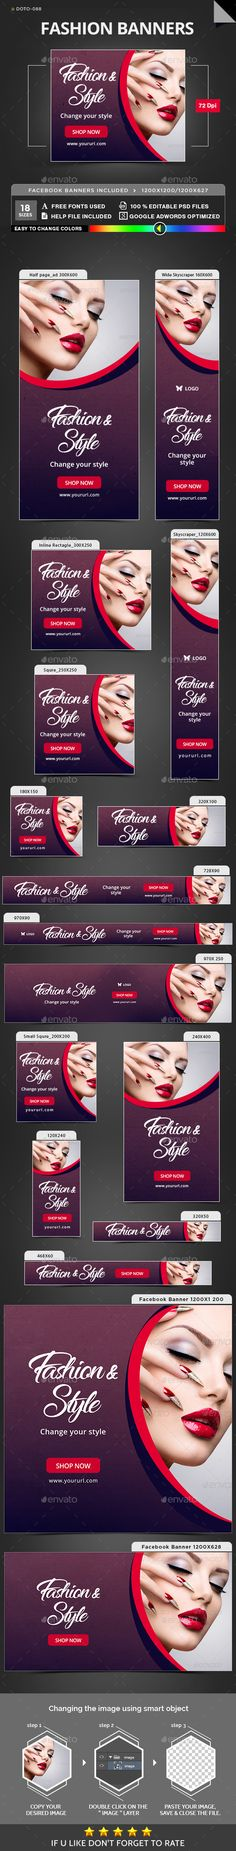 #Fashion #Banner #template - Banners & Ads Web Elements #design. download: https://graphicriver.net/item/fashion-banners/20338731?ref=yinkira